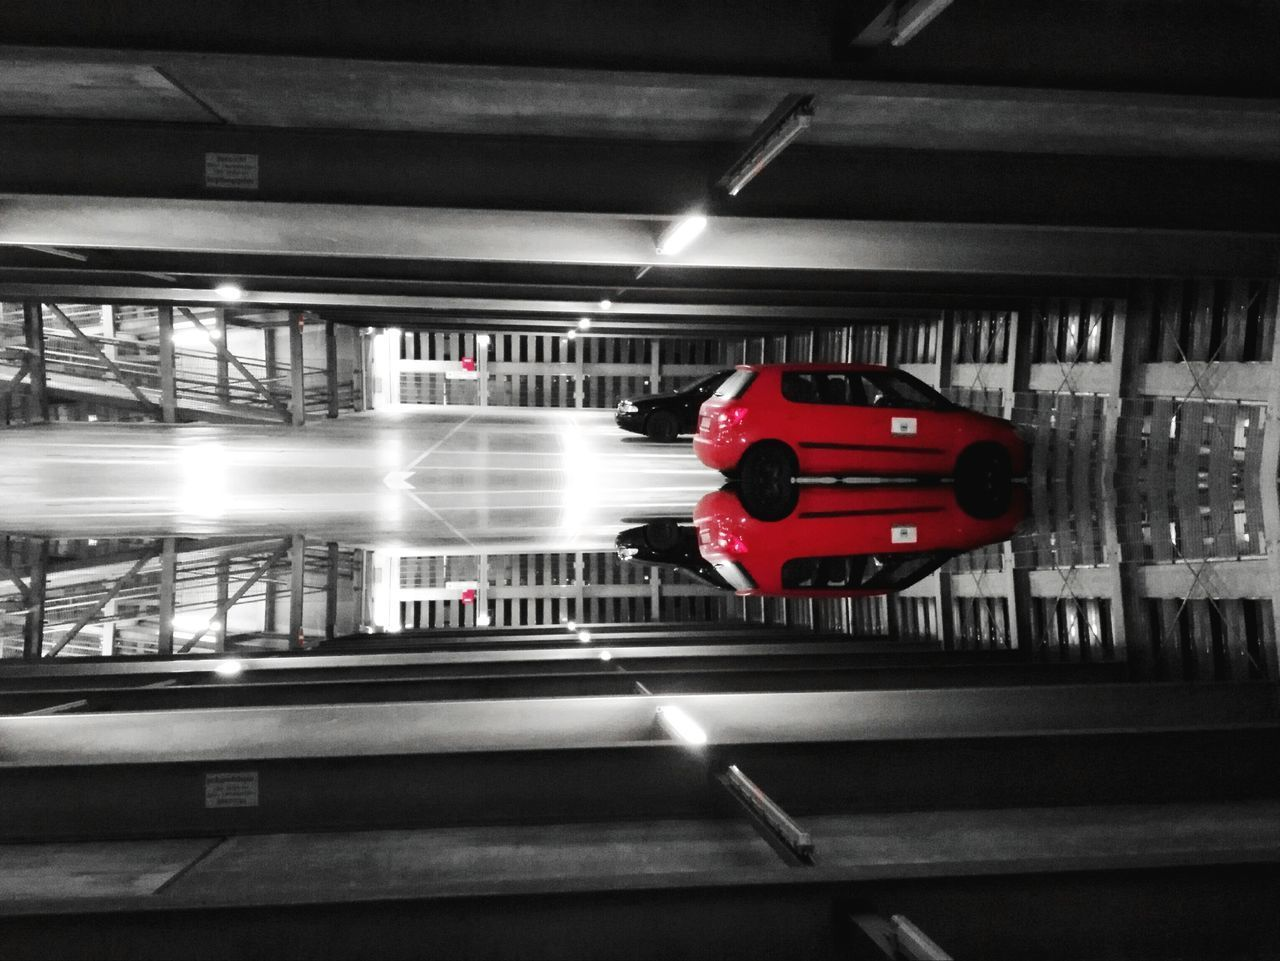 illuminated, red, indoors, transportation, no people, day